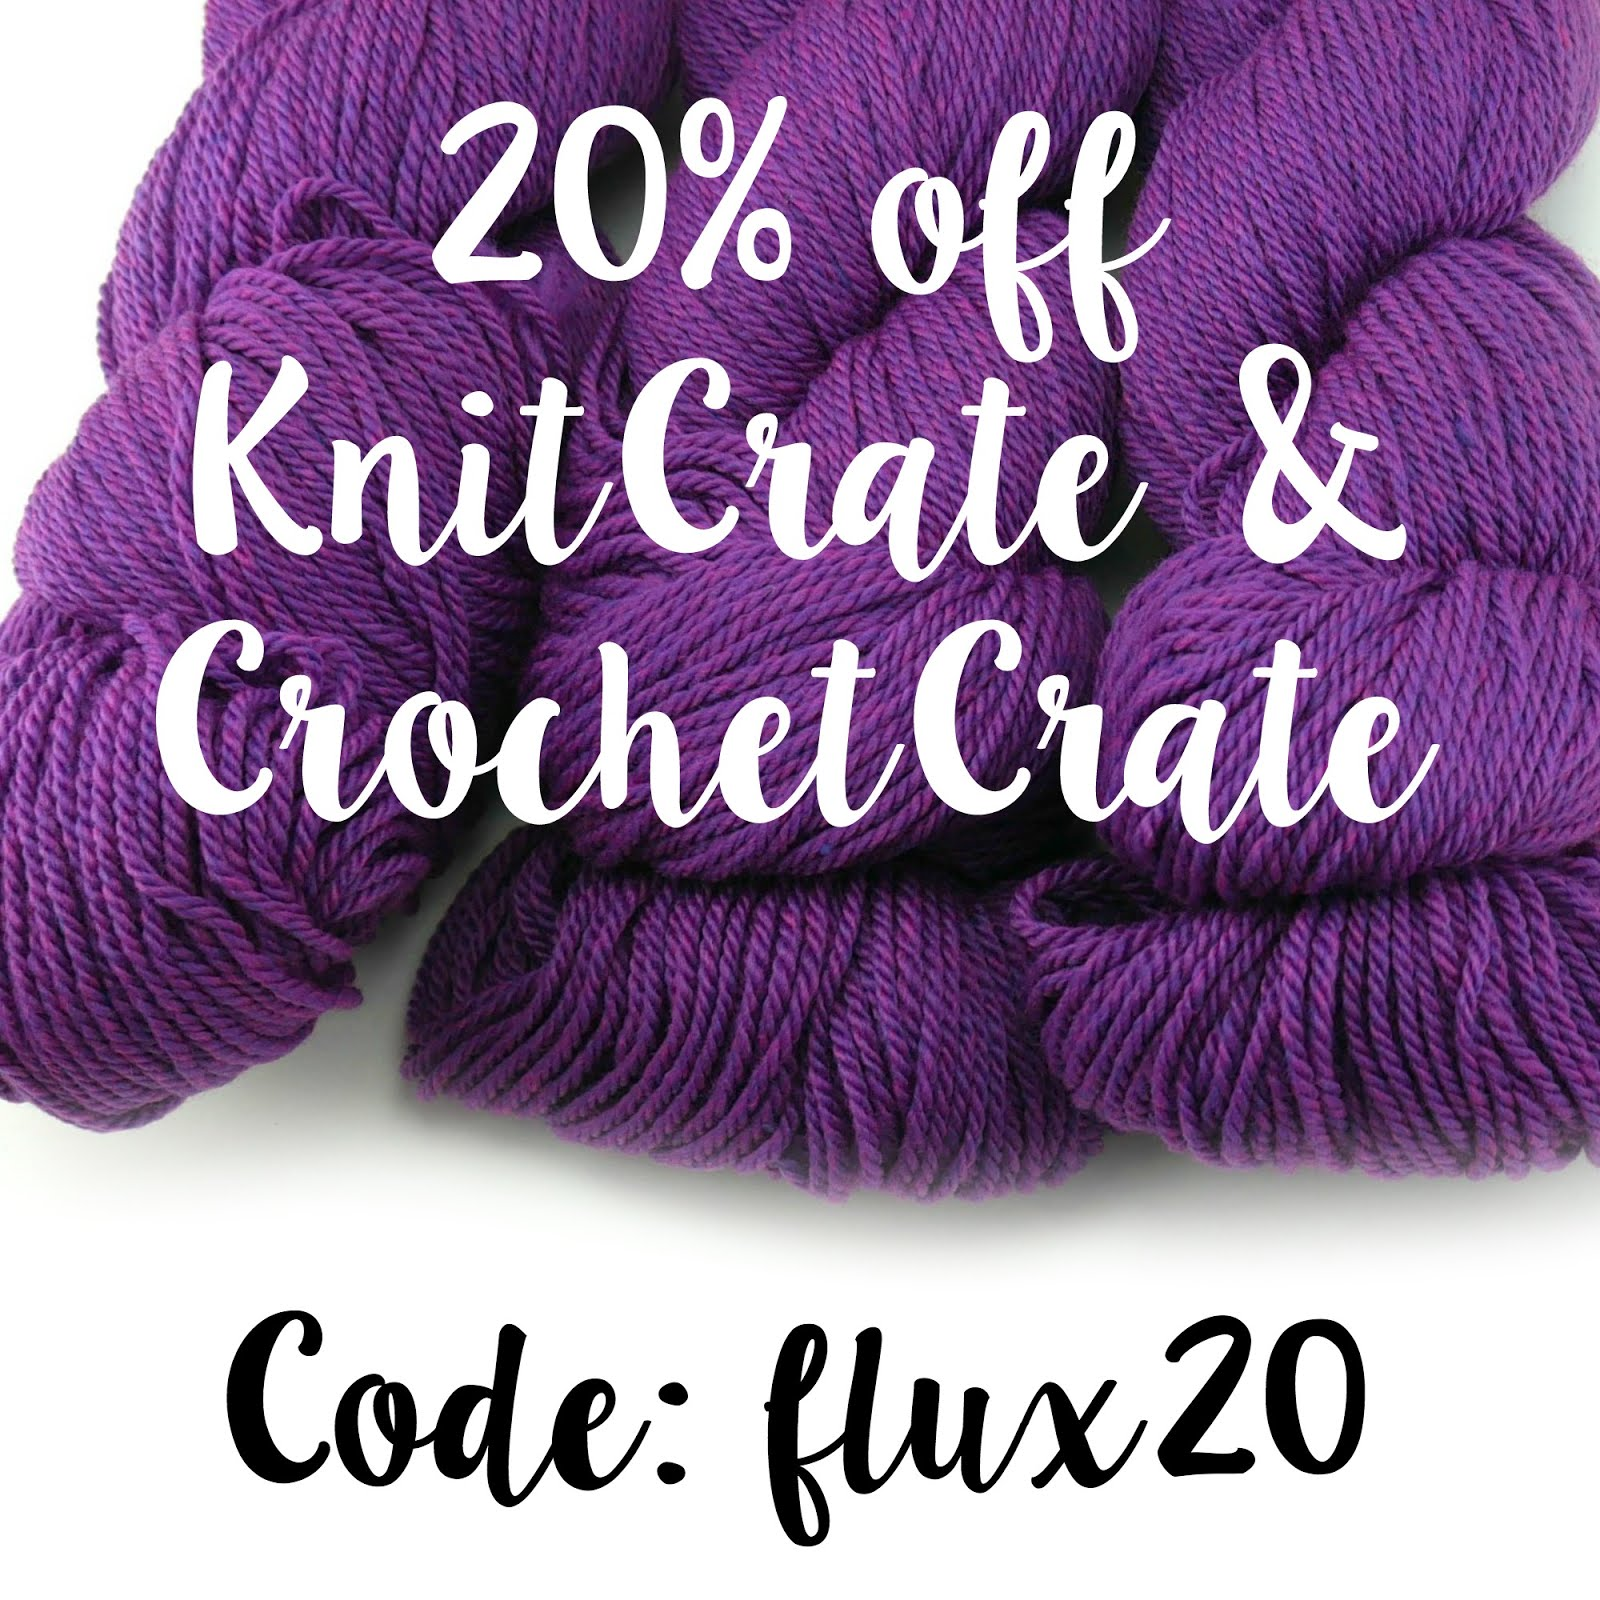 Save 20% on KniteCrate & CrochetCrate!